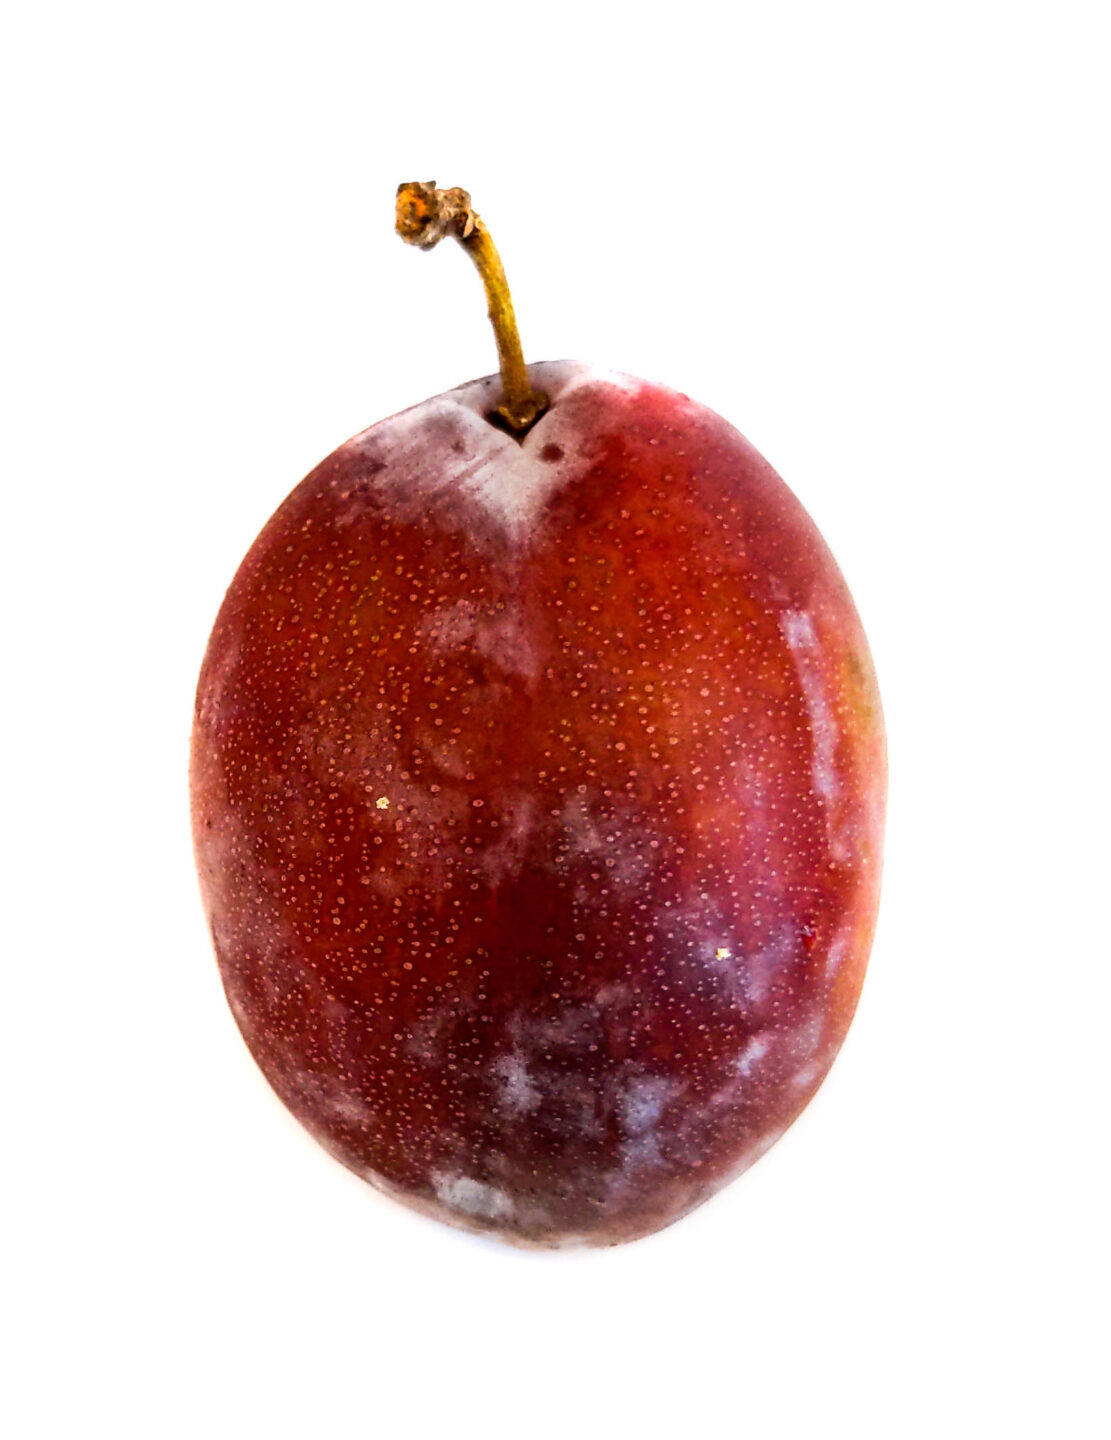 Prune type of plum: oval and often has white 'blooming' on the skin